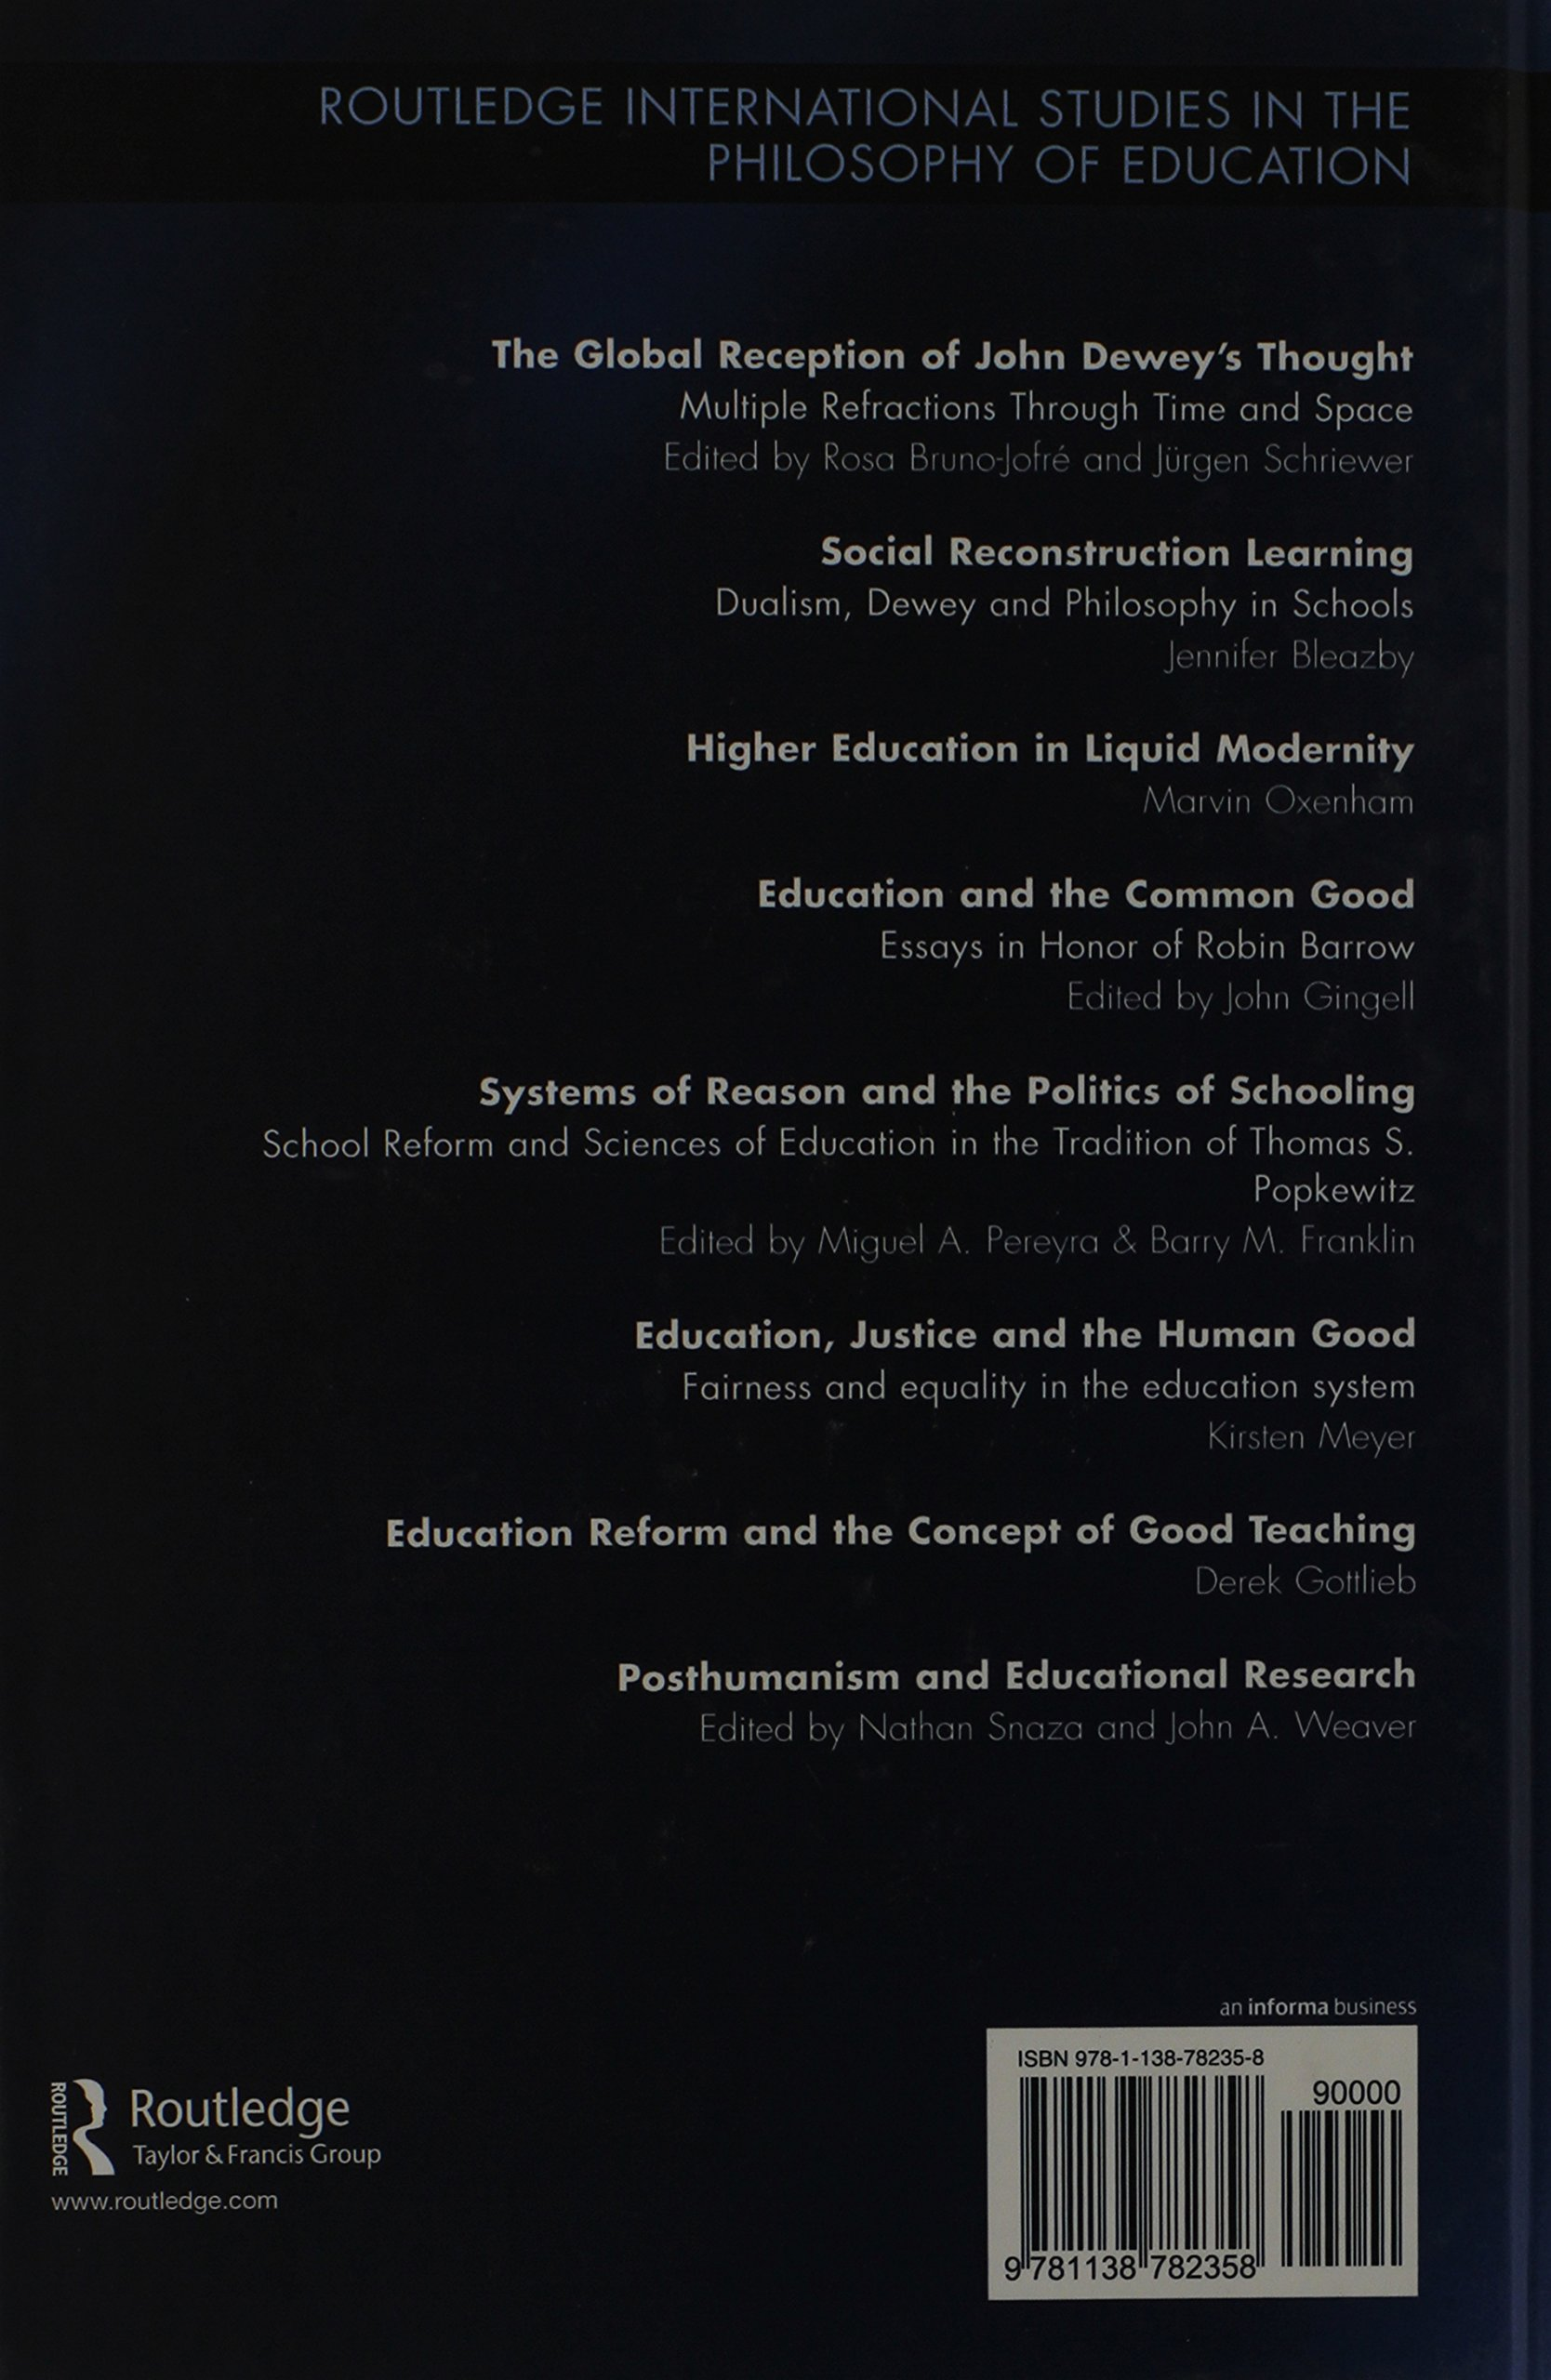 posthumanism and educational research routledge international posthumanism and educational research routledge international studies in the philosophy of education amazon co uk nathan snaza john weaver books